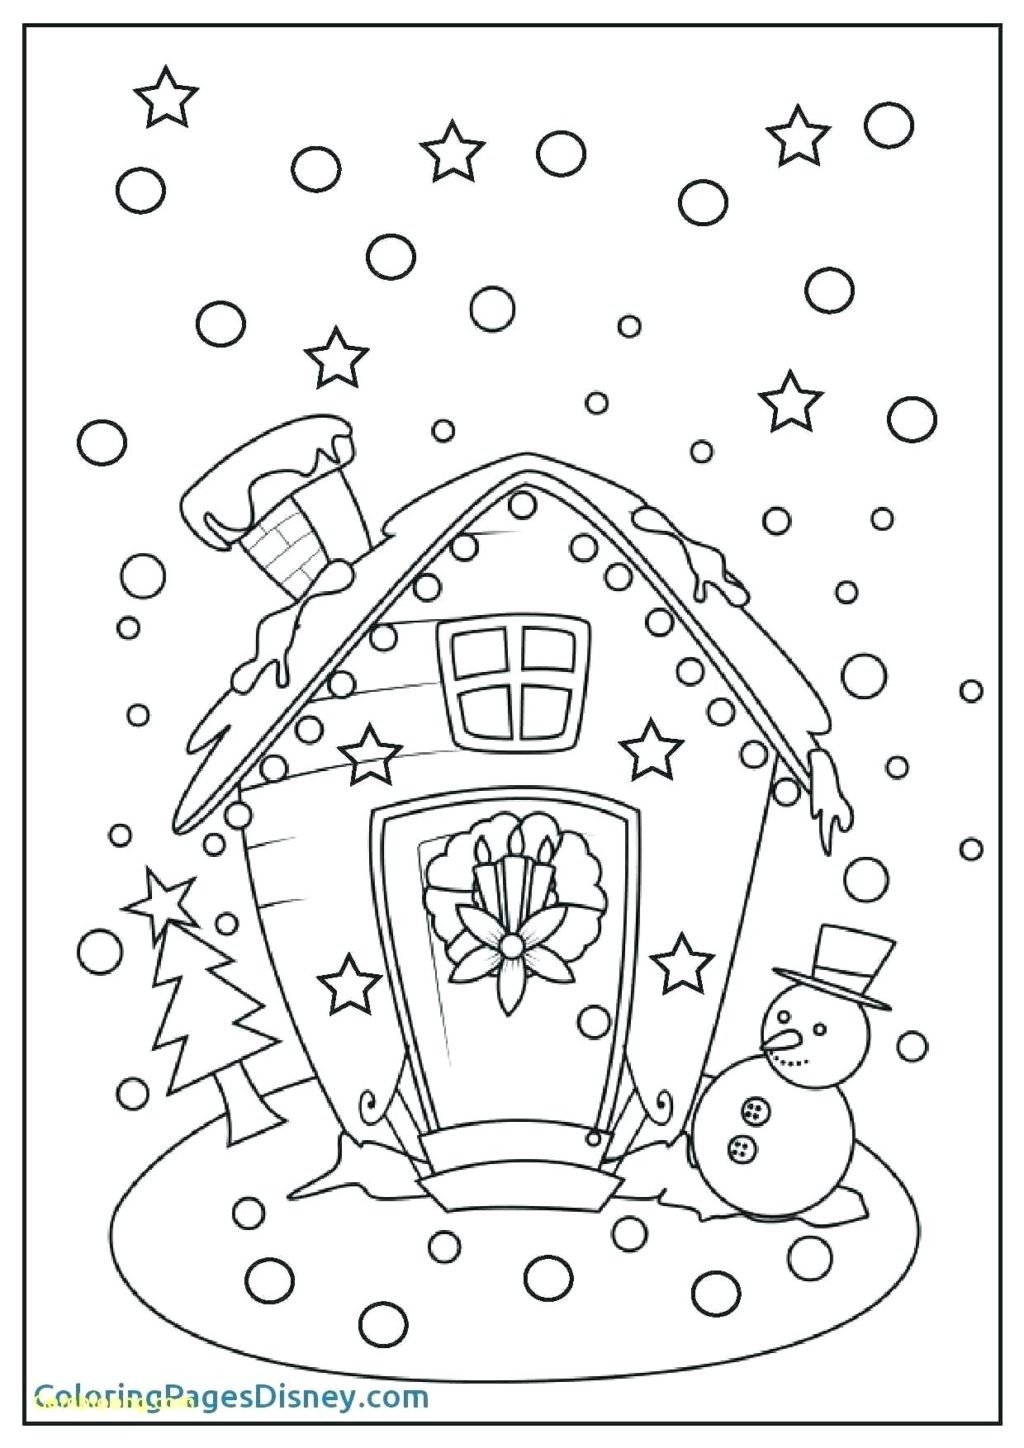 printable math coloring pages 4th grade worksheets free christmas money volume 1024x1448